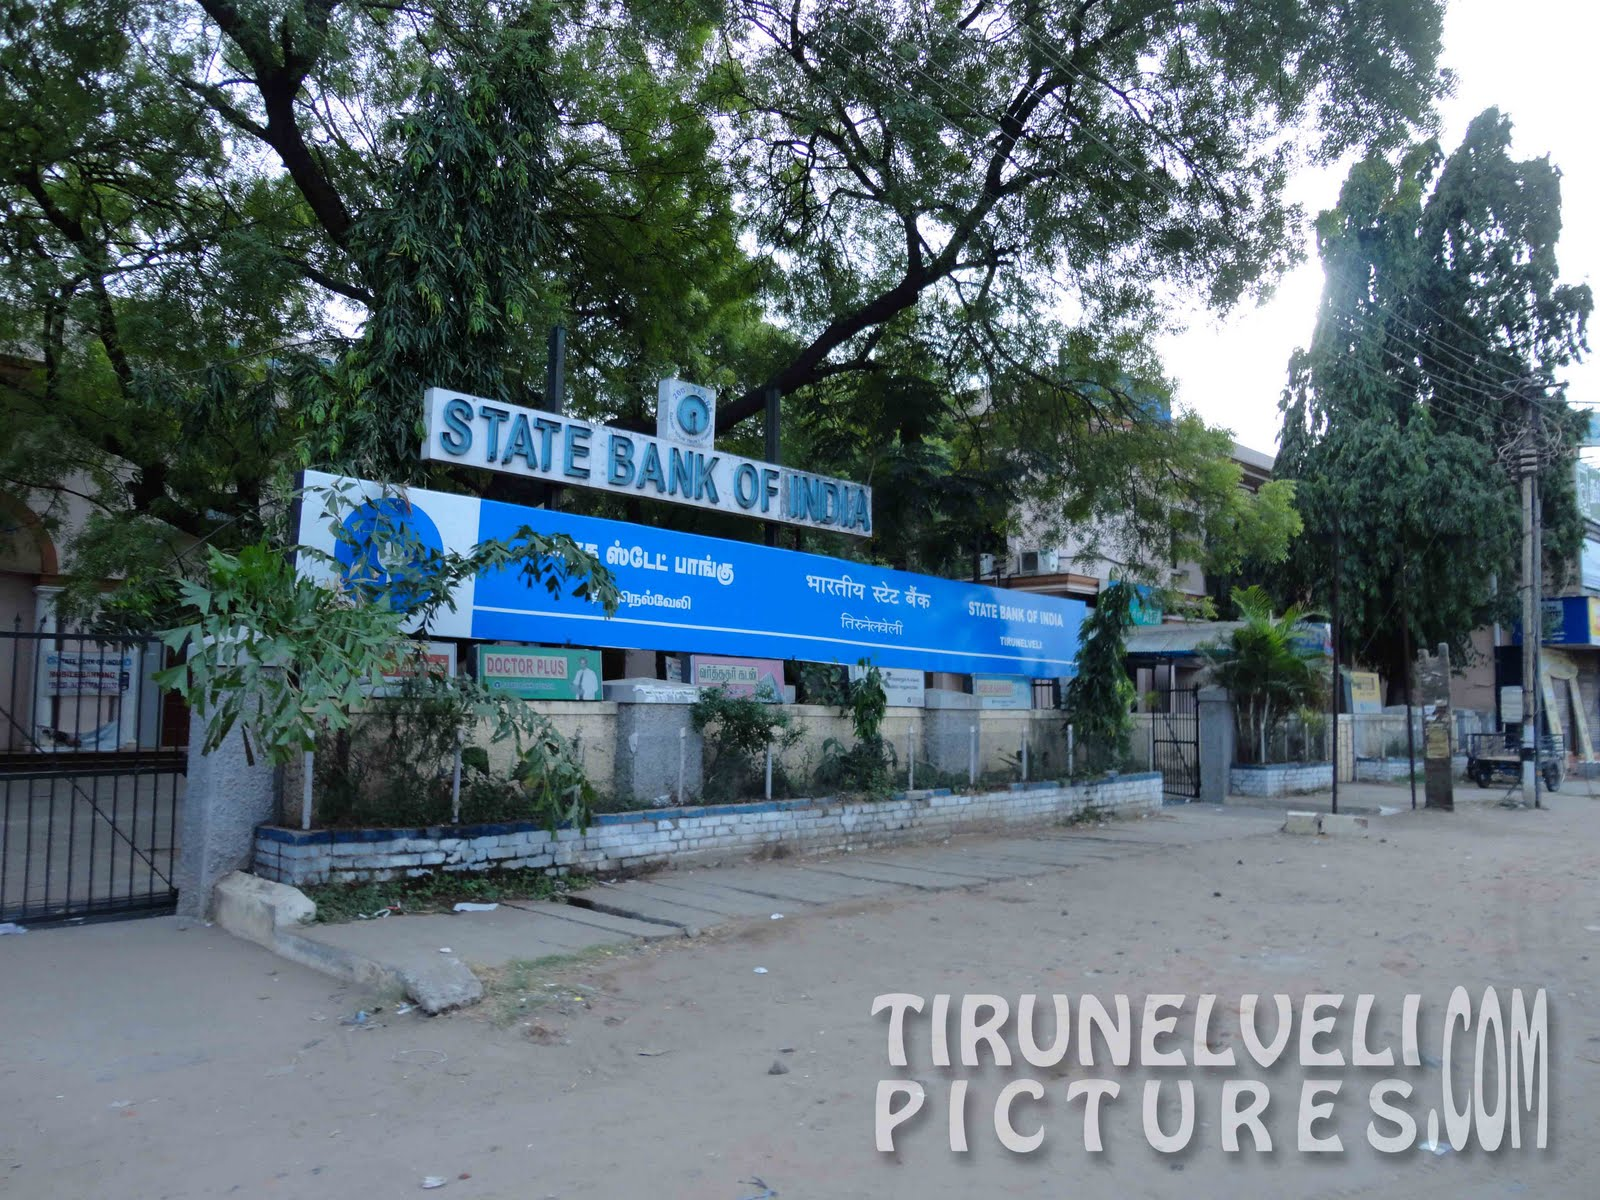 Tirunelveli India  city photo : ... www.tirunelvelipictures.com: Tirunelveli Junction State Bank of India